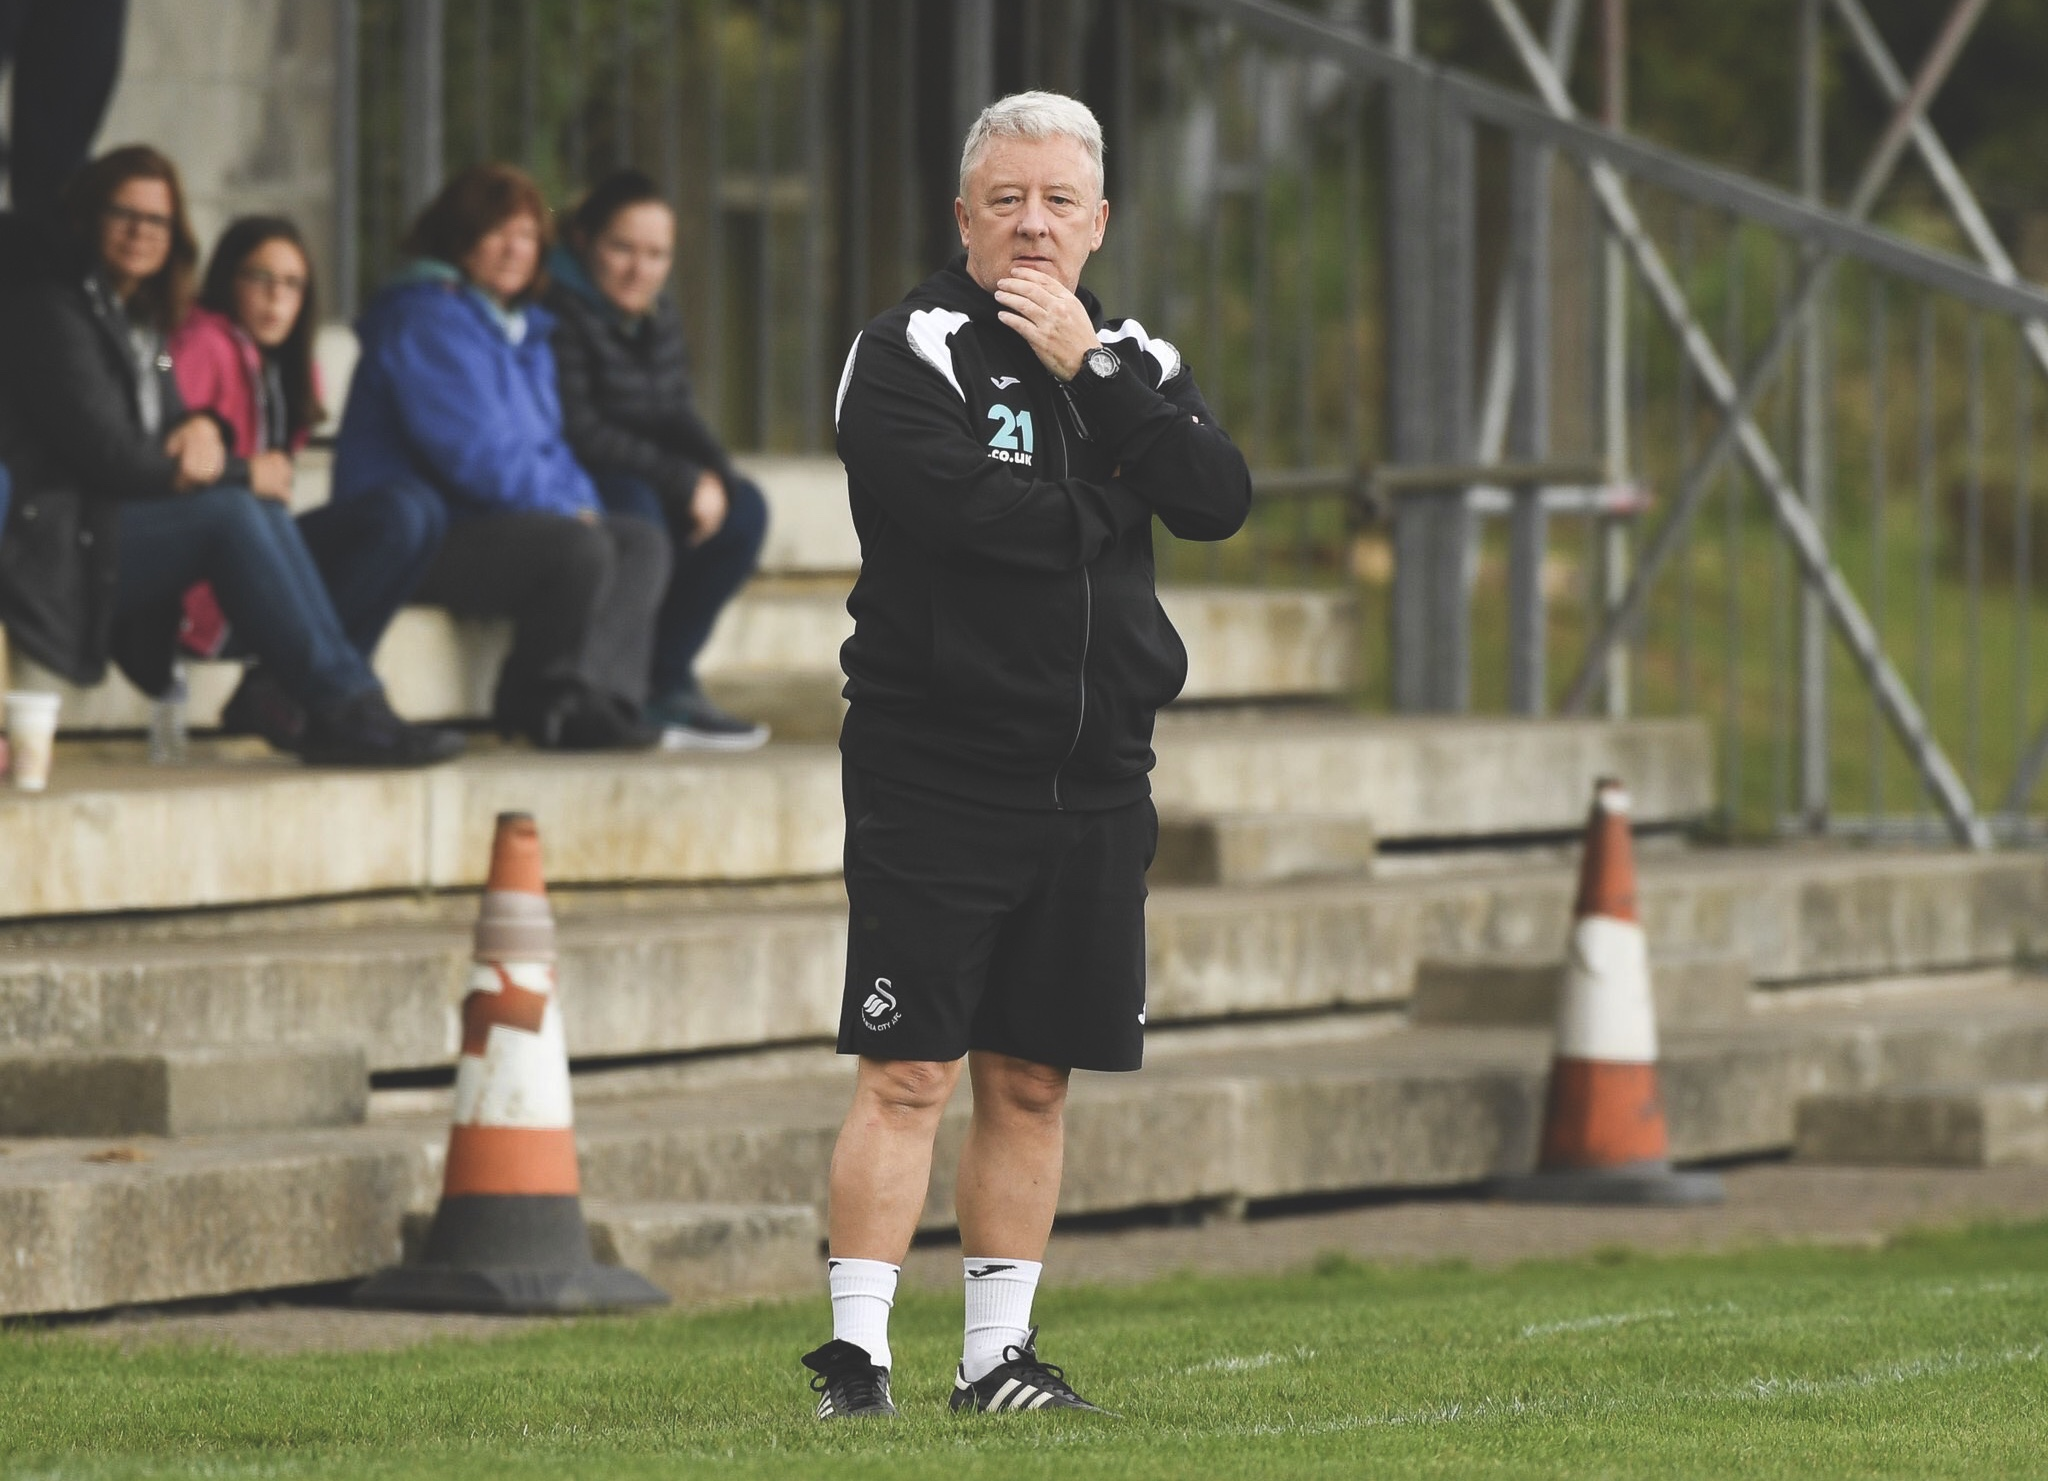 Swansea City's Ian Owen stood in the dugout. Photo by @SwanseaLadies